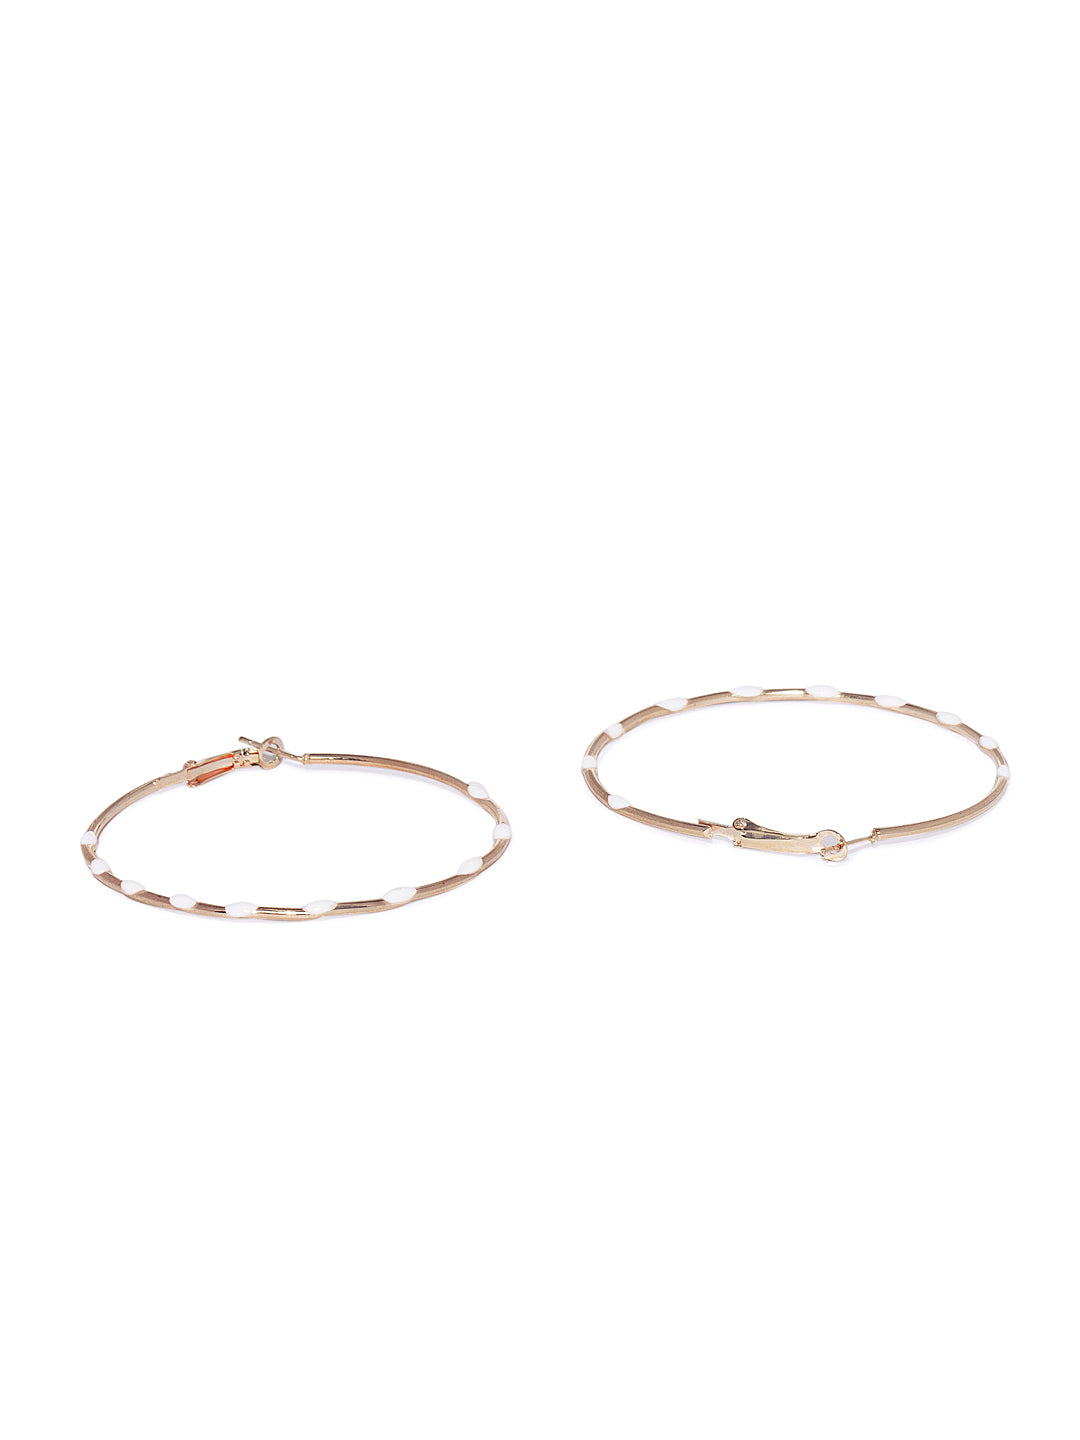 White Dotted Circular Hoops - ChicMela